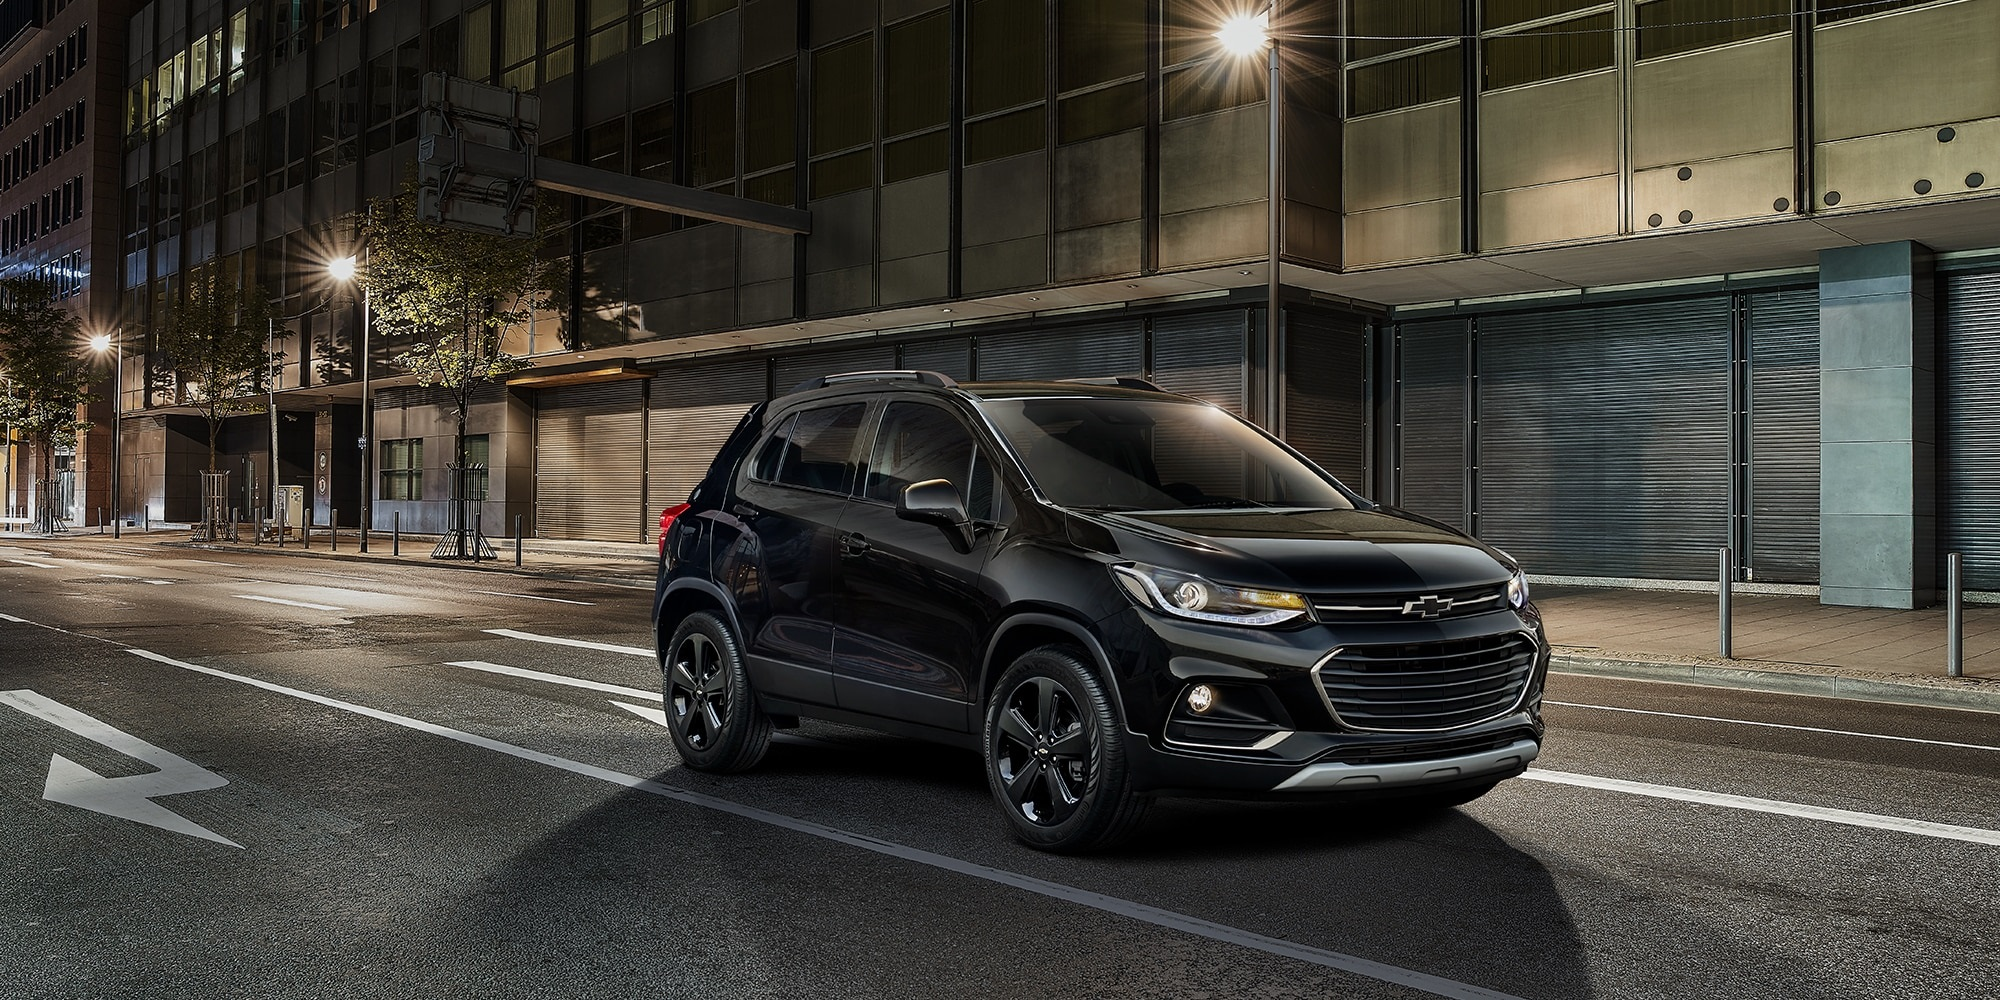 2019 Chevrolet Trax Leasing near Lansing, MI